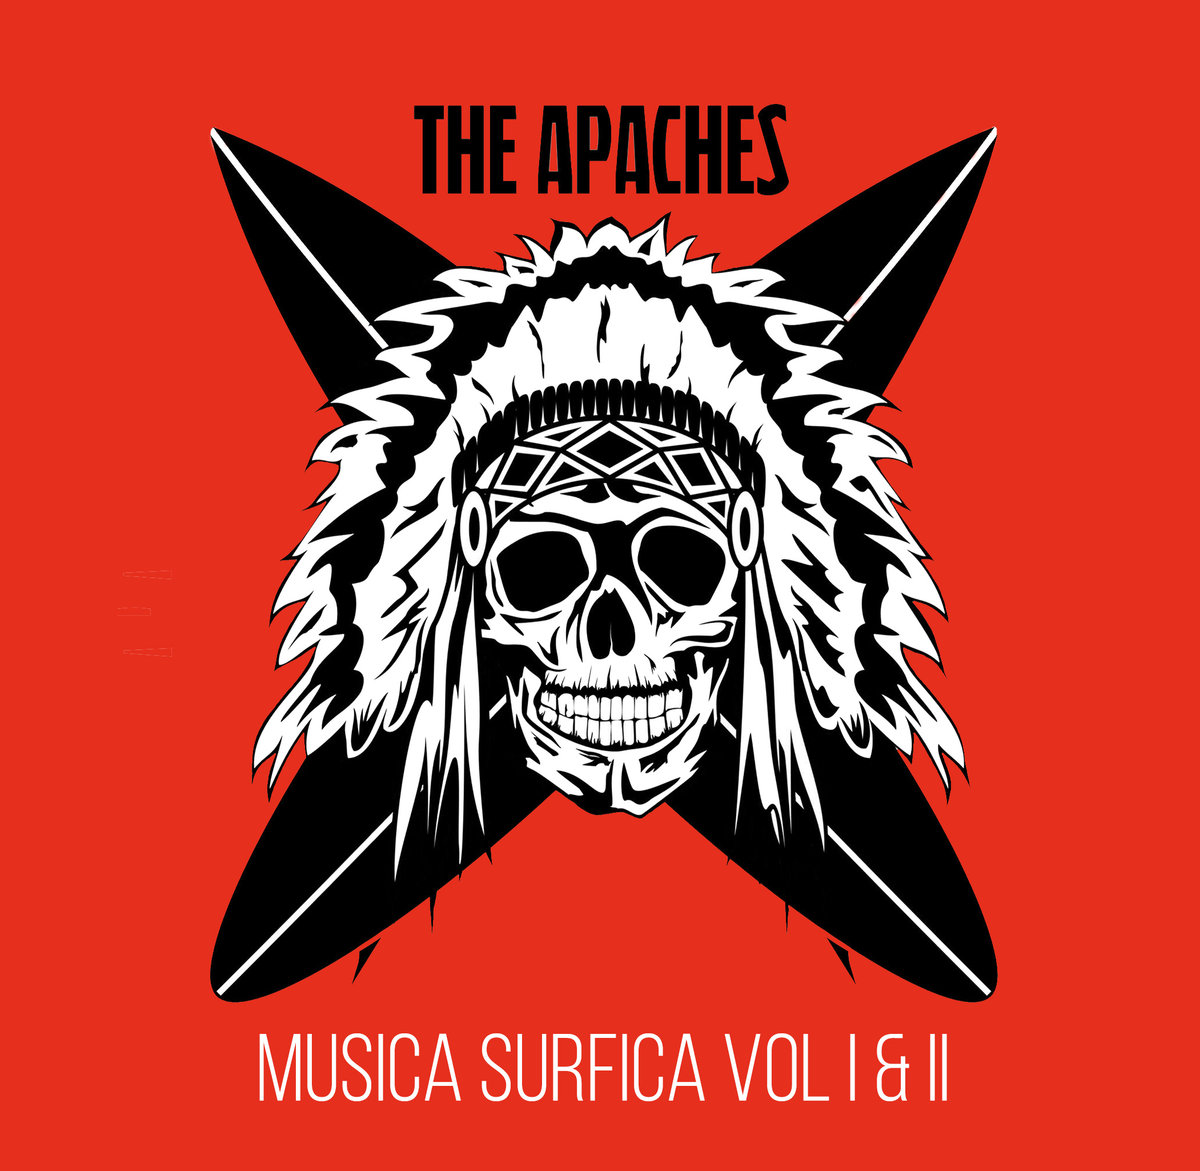 The Apaches - Musica Surfica Vol I & II